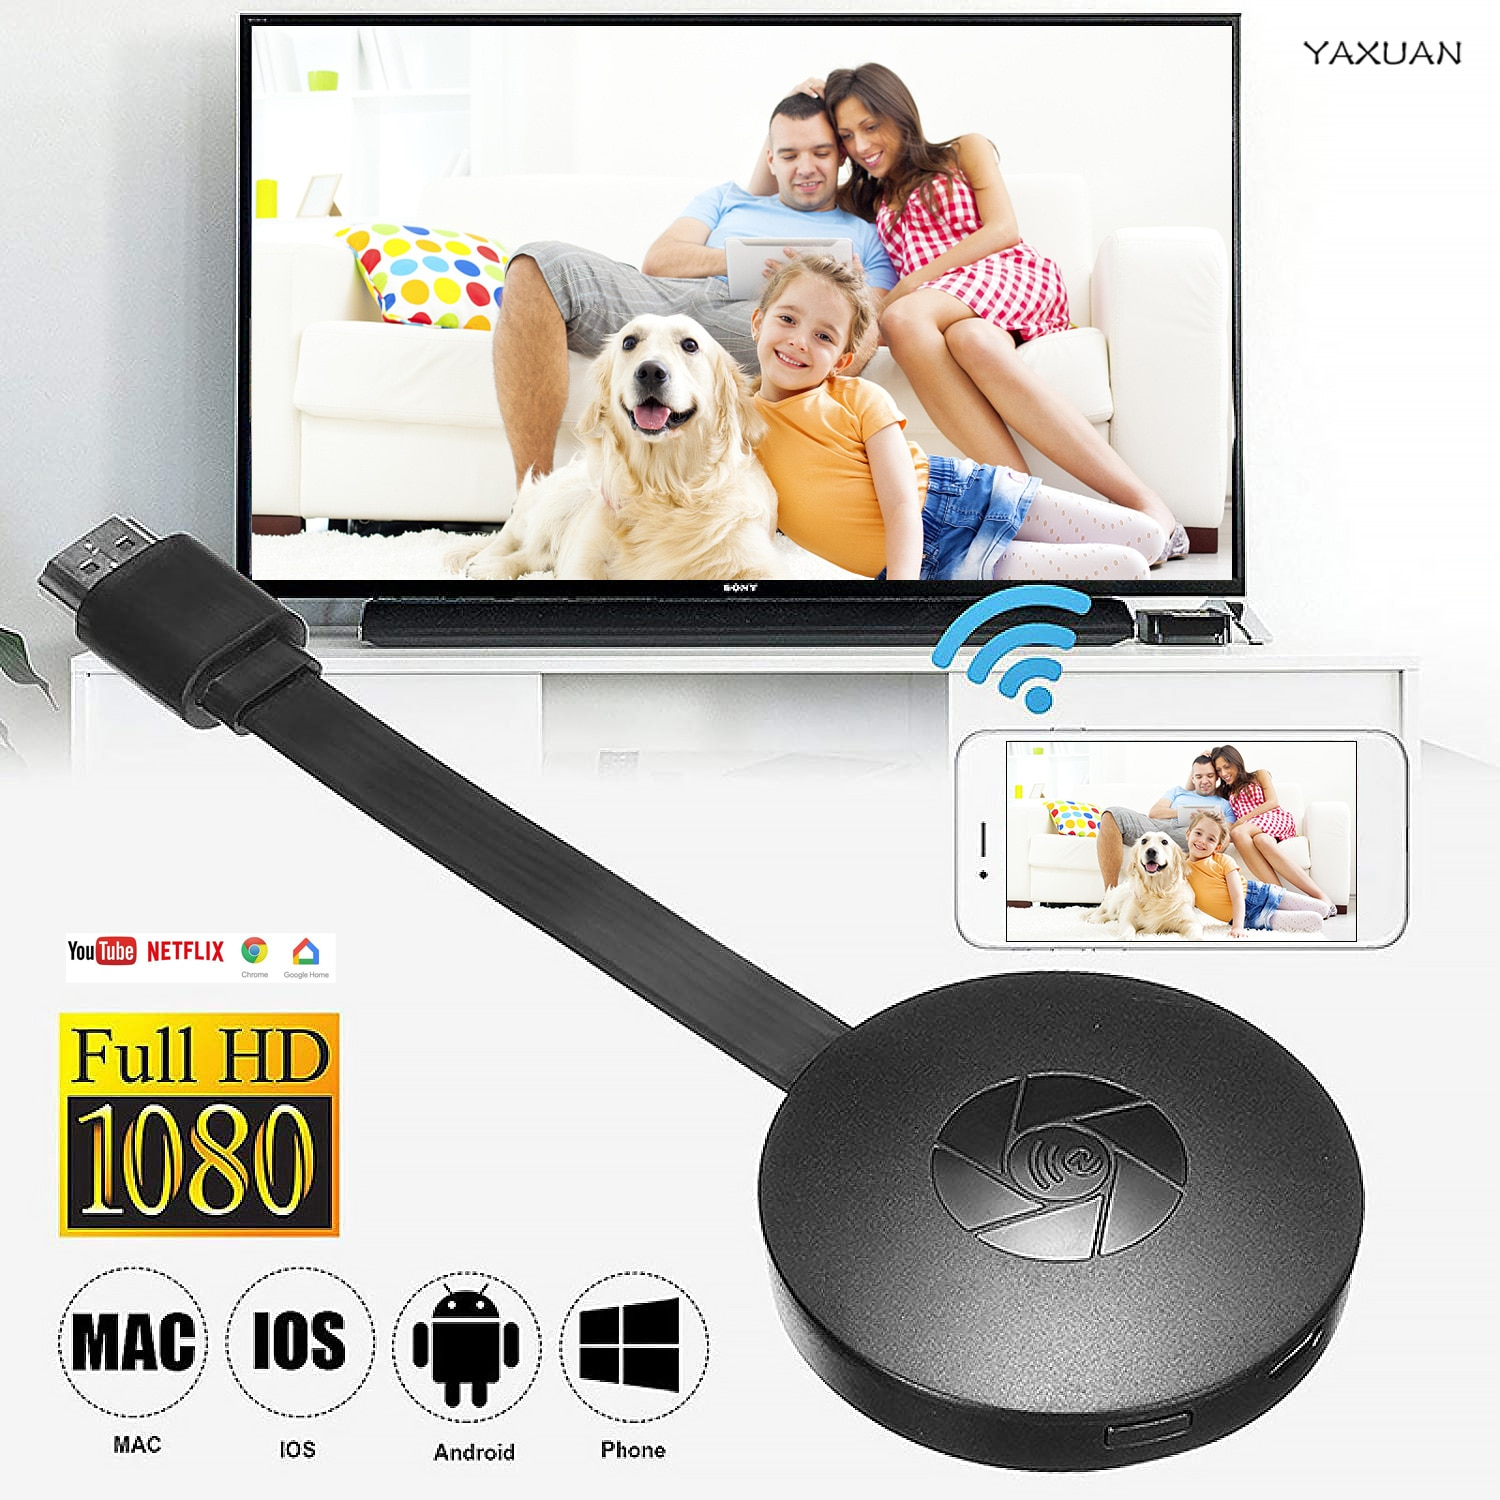 1080P Wireless WiFi Display Dongle TV Stick Video Adapter Airplay DLNA Screen Mirroring Share for iP